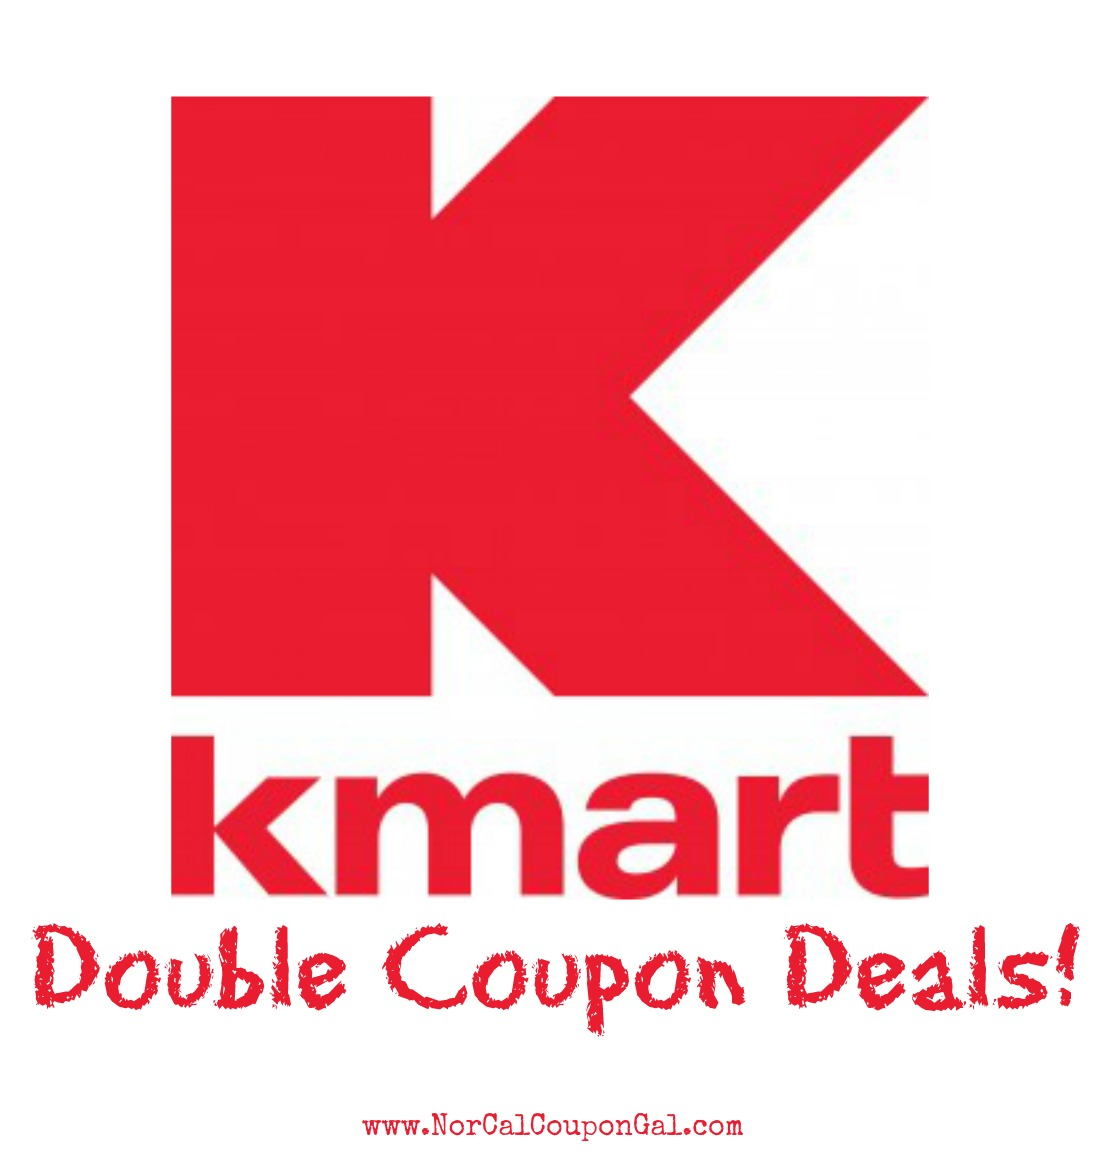 Kmart discount coupons